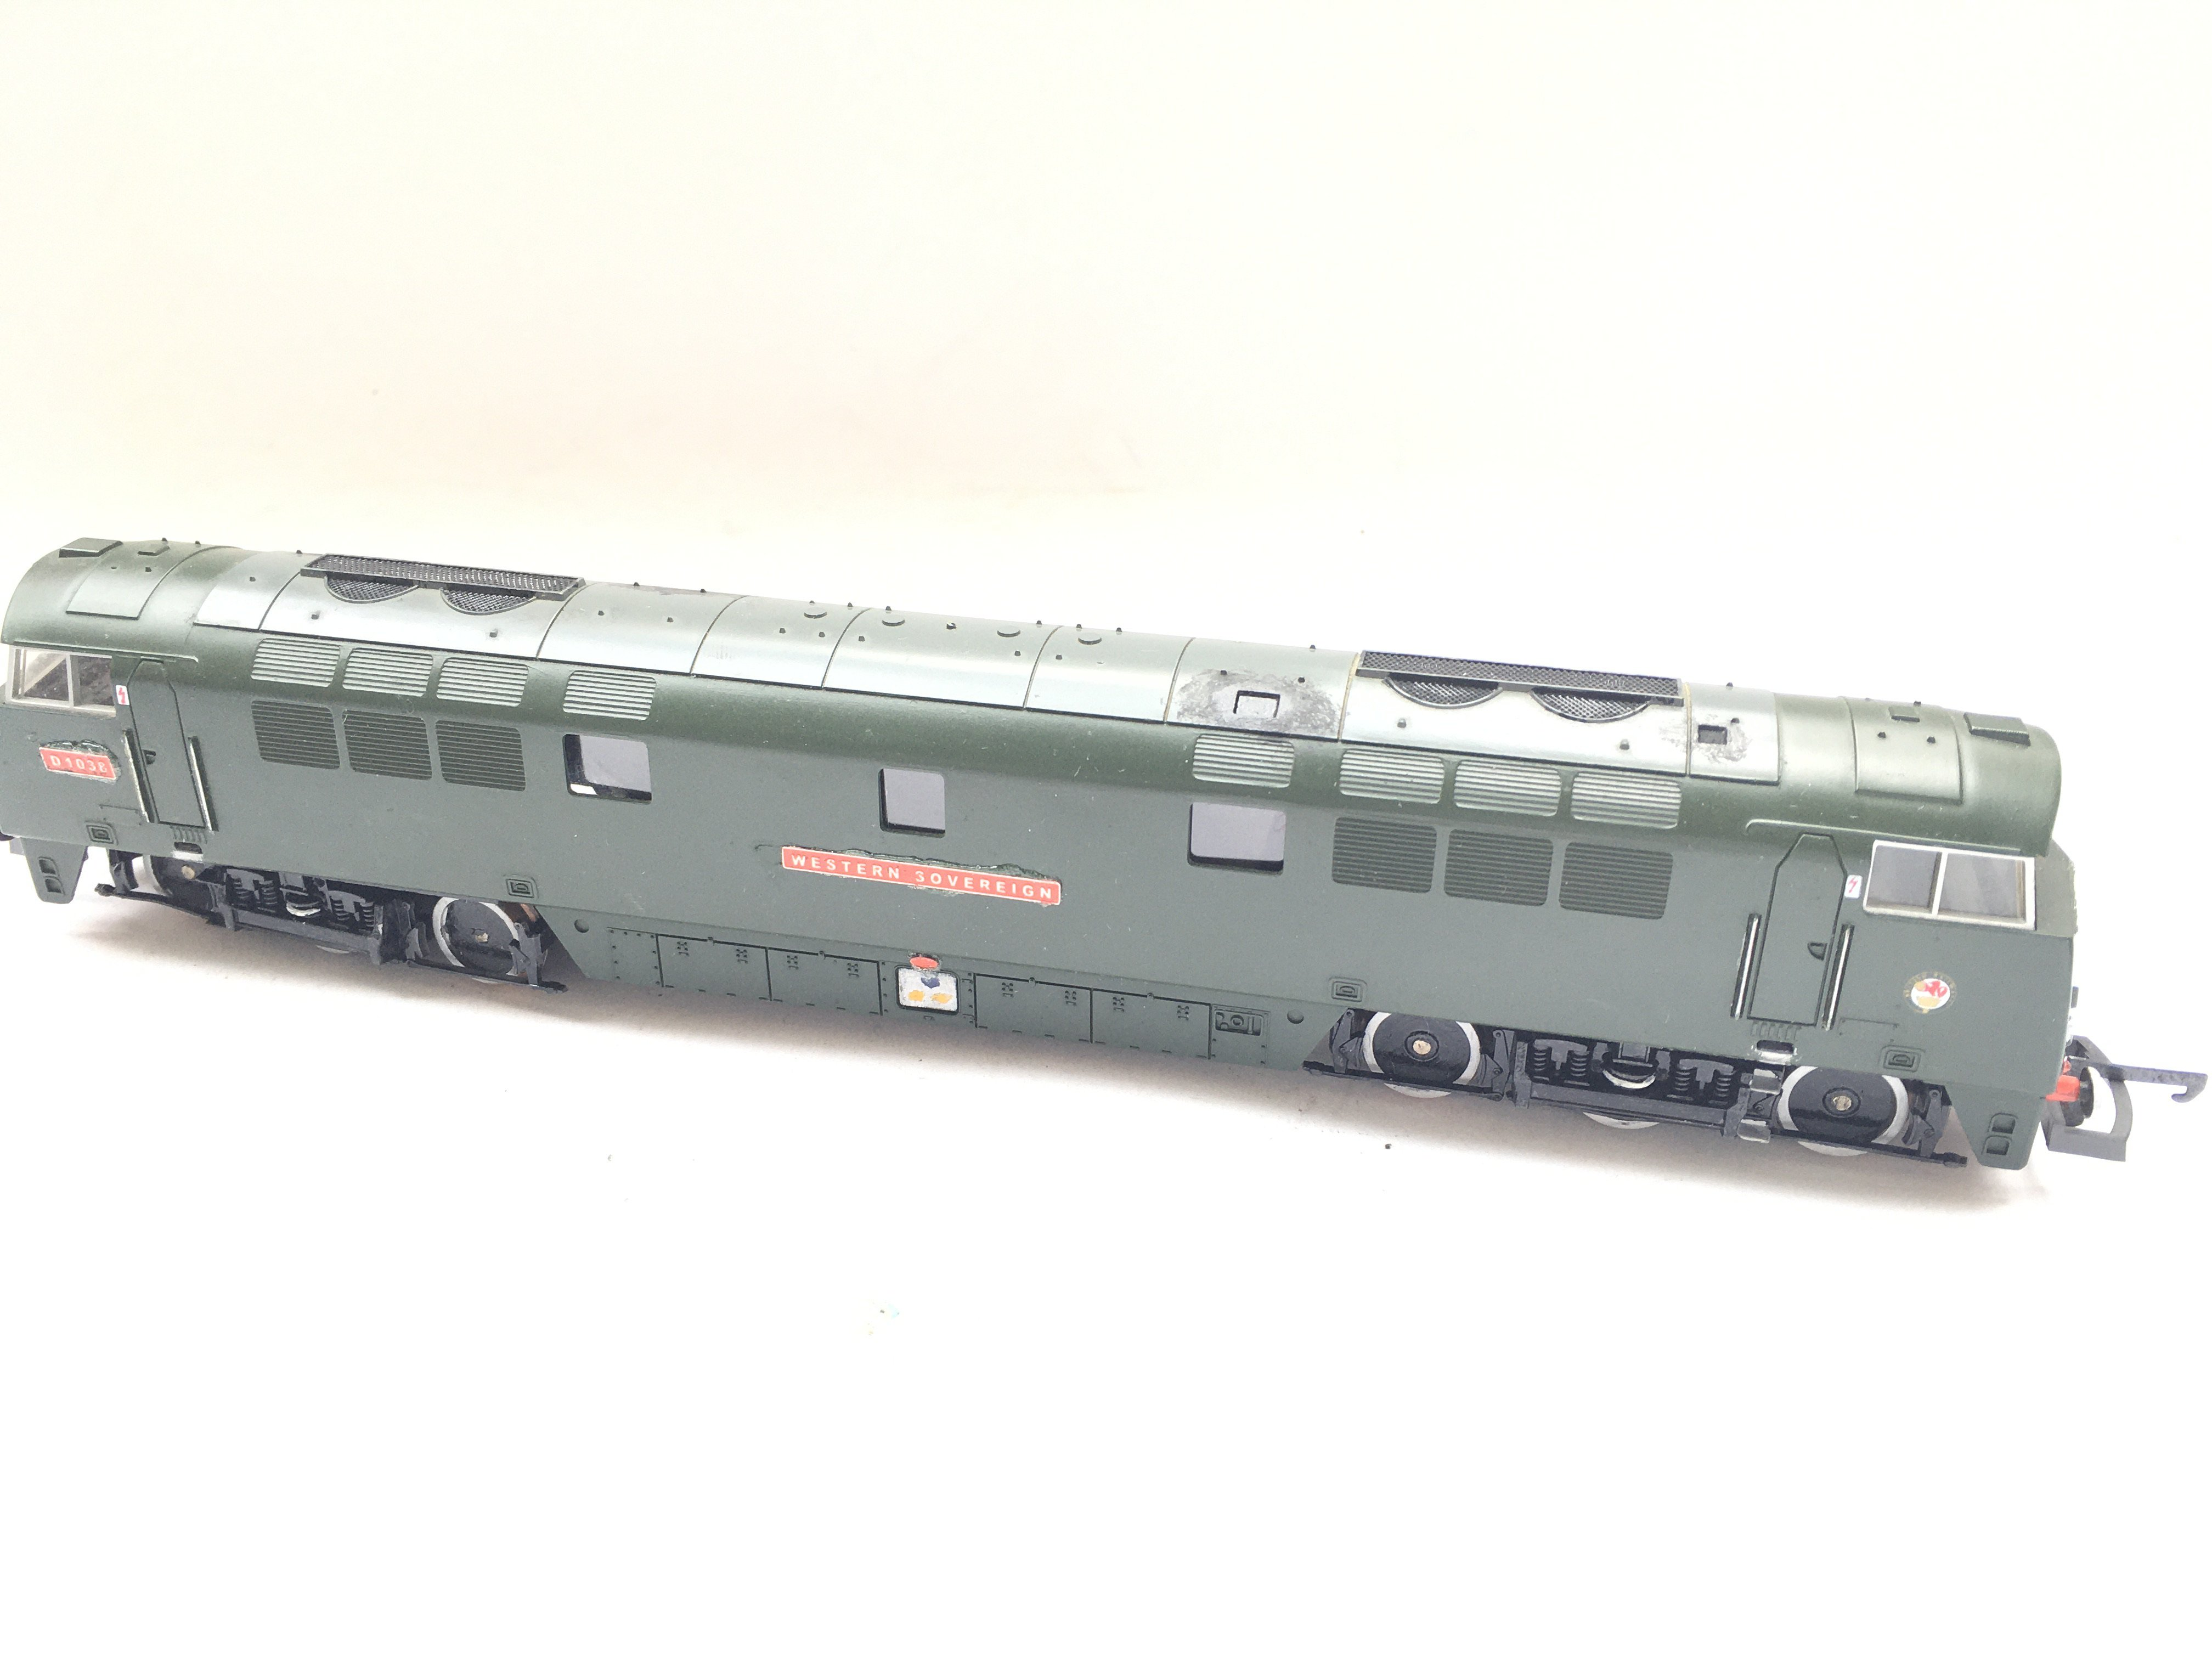 2 X Boxed Lima Locomotives including Western Sover - Image 3 of 3